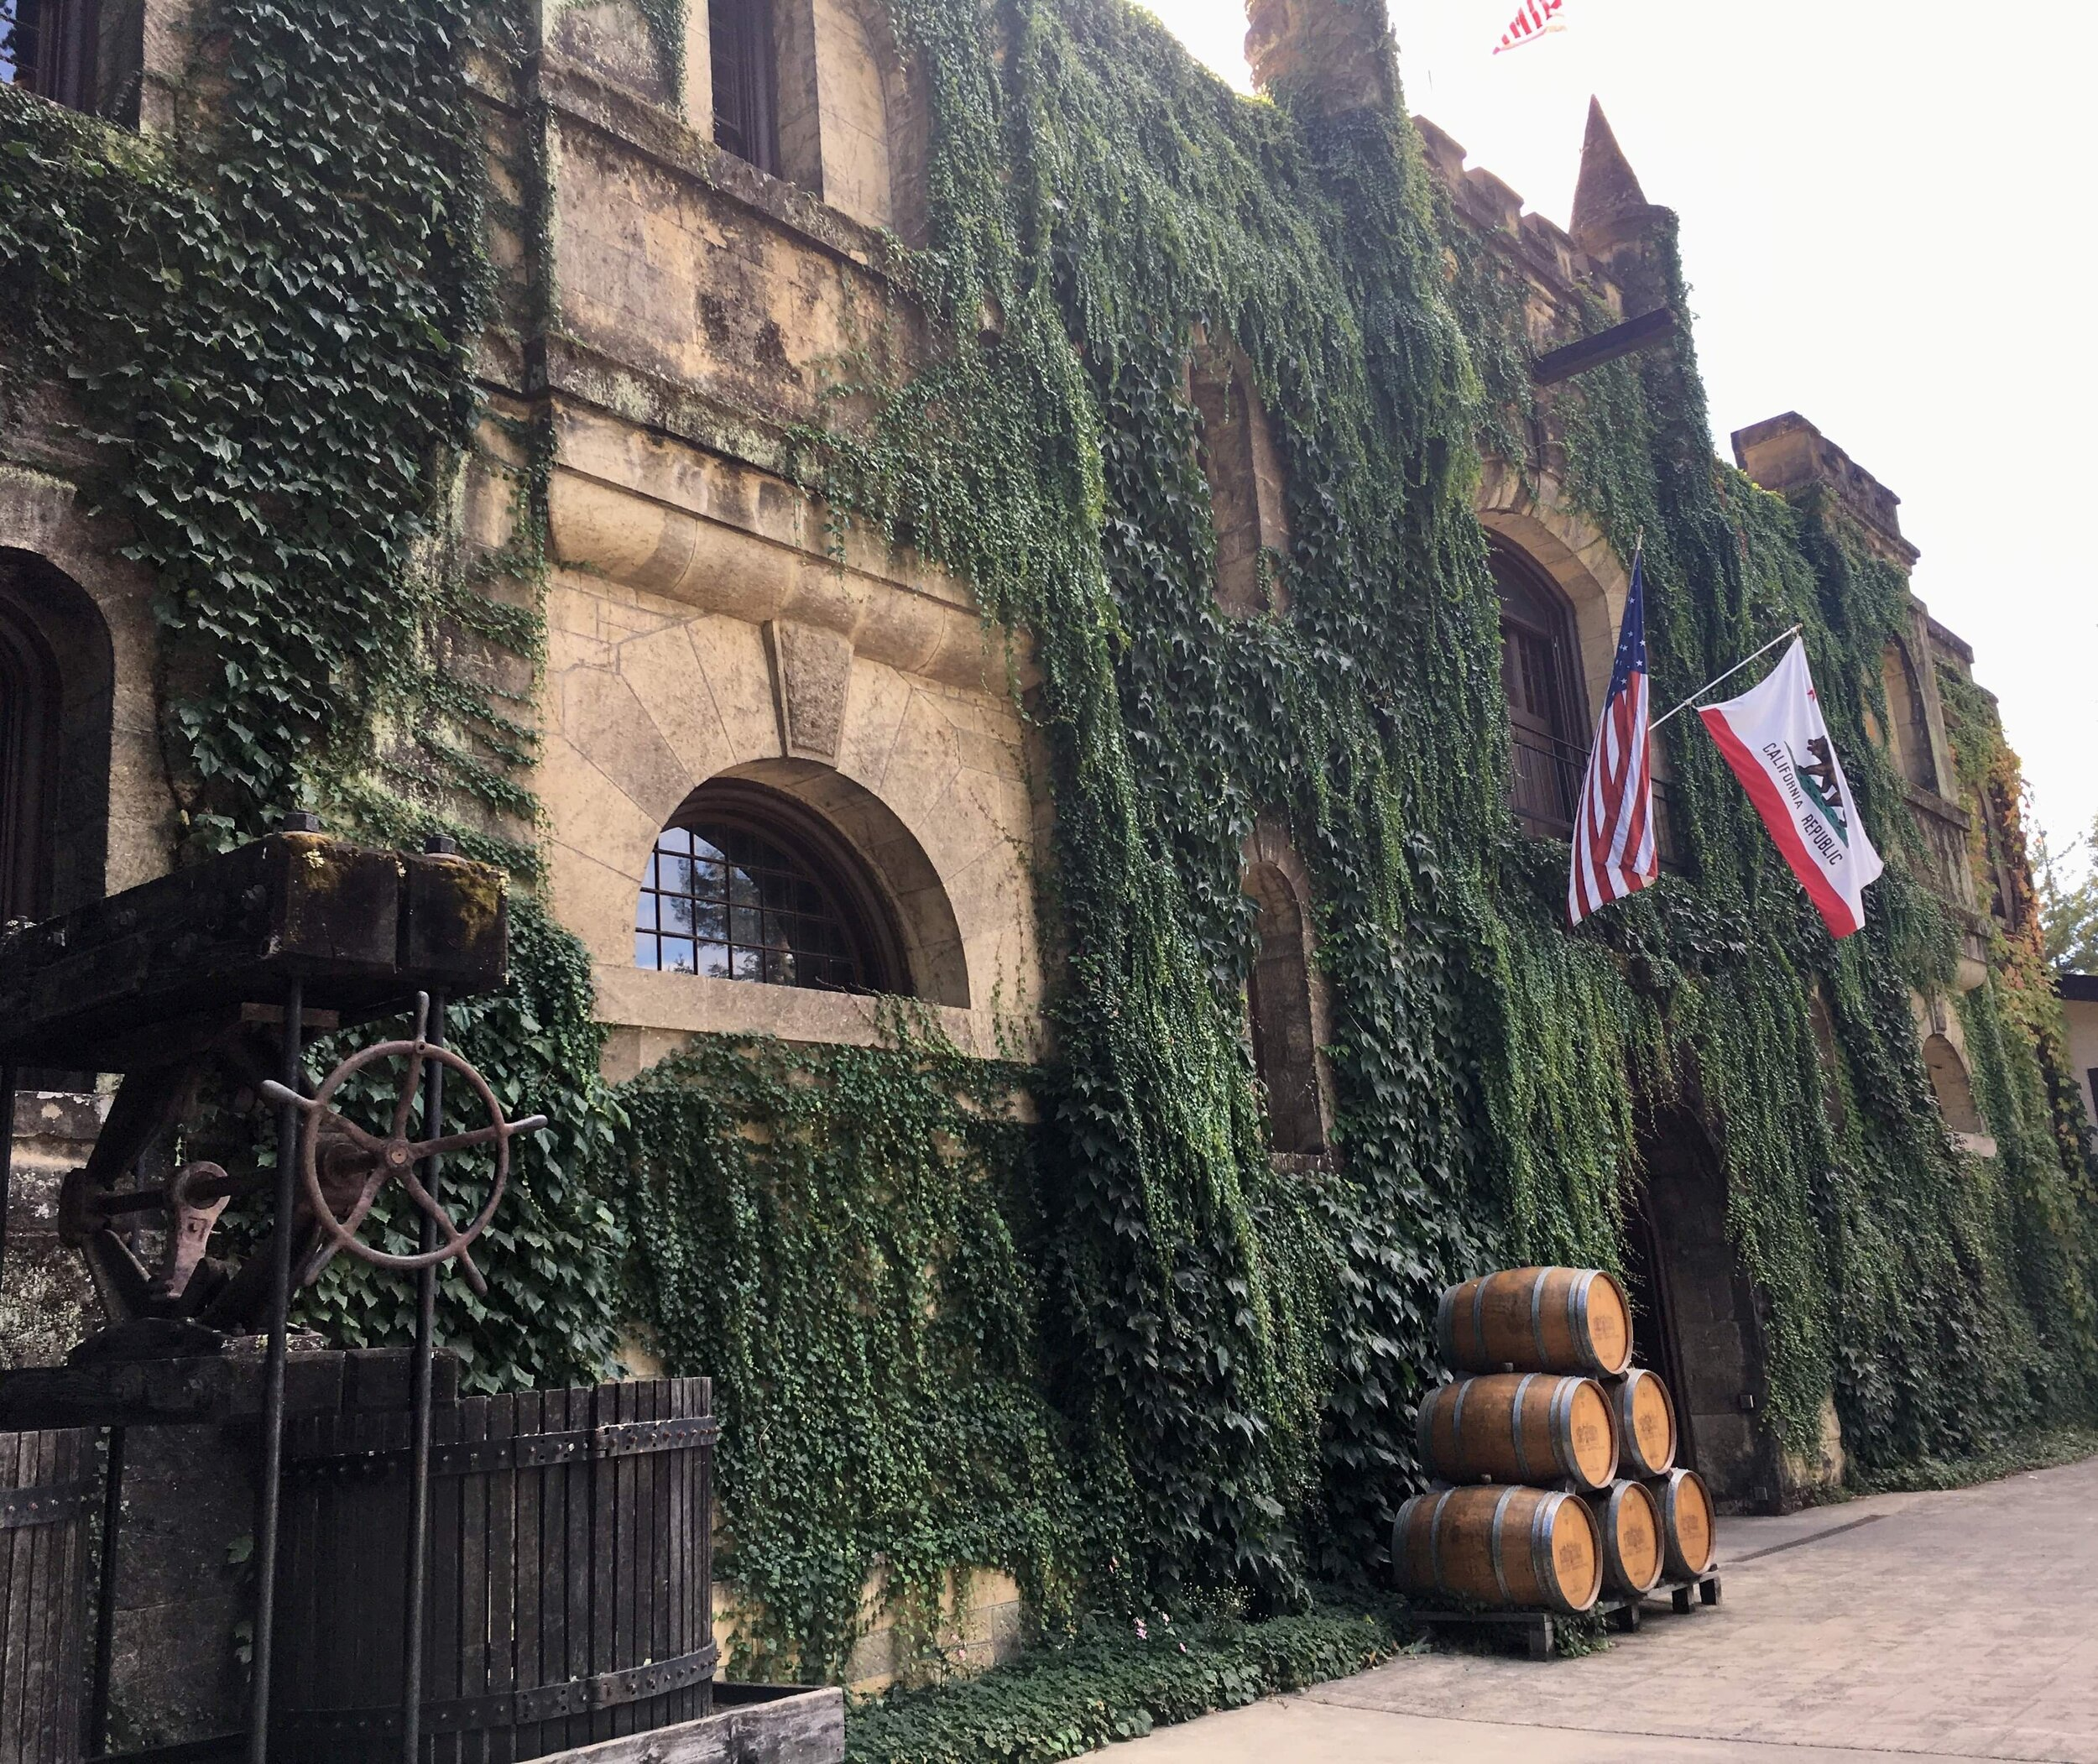 This winery was featured in one of the worst written movies I've now seen twice